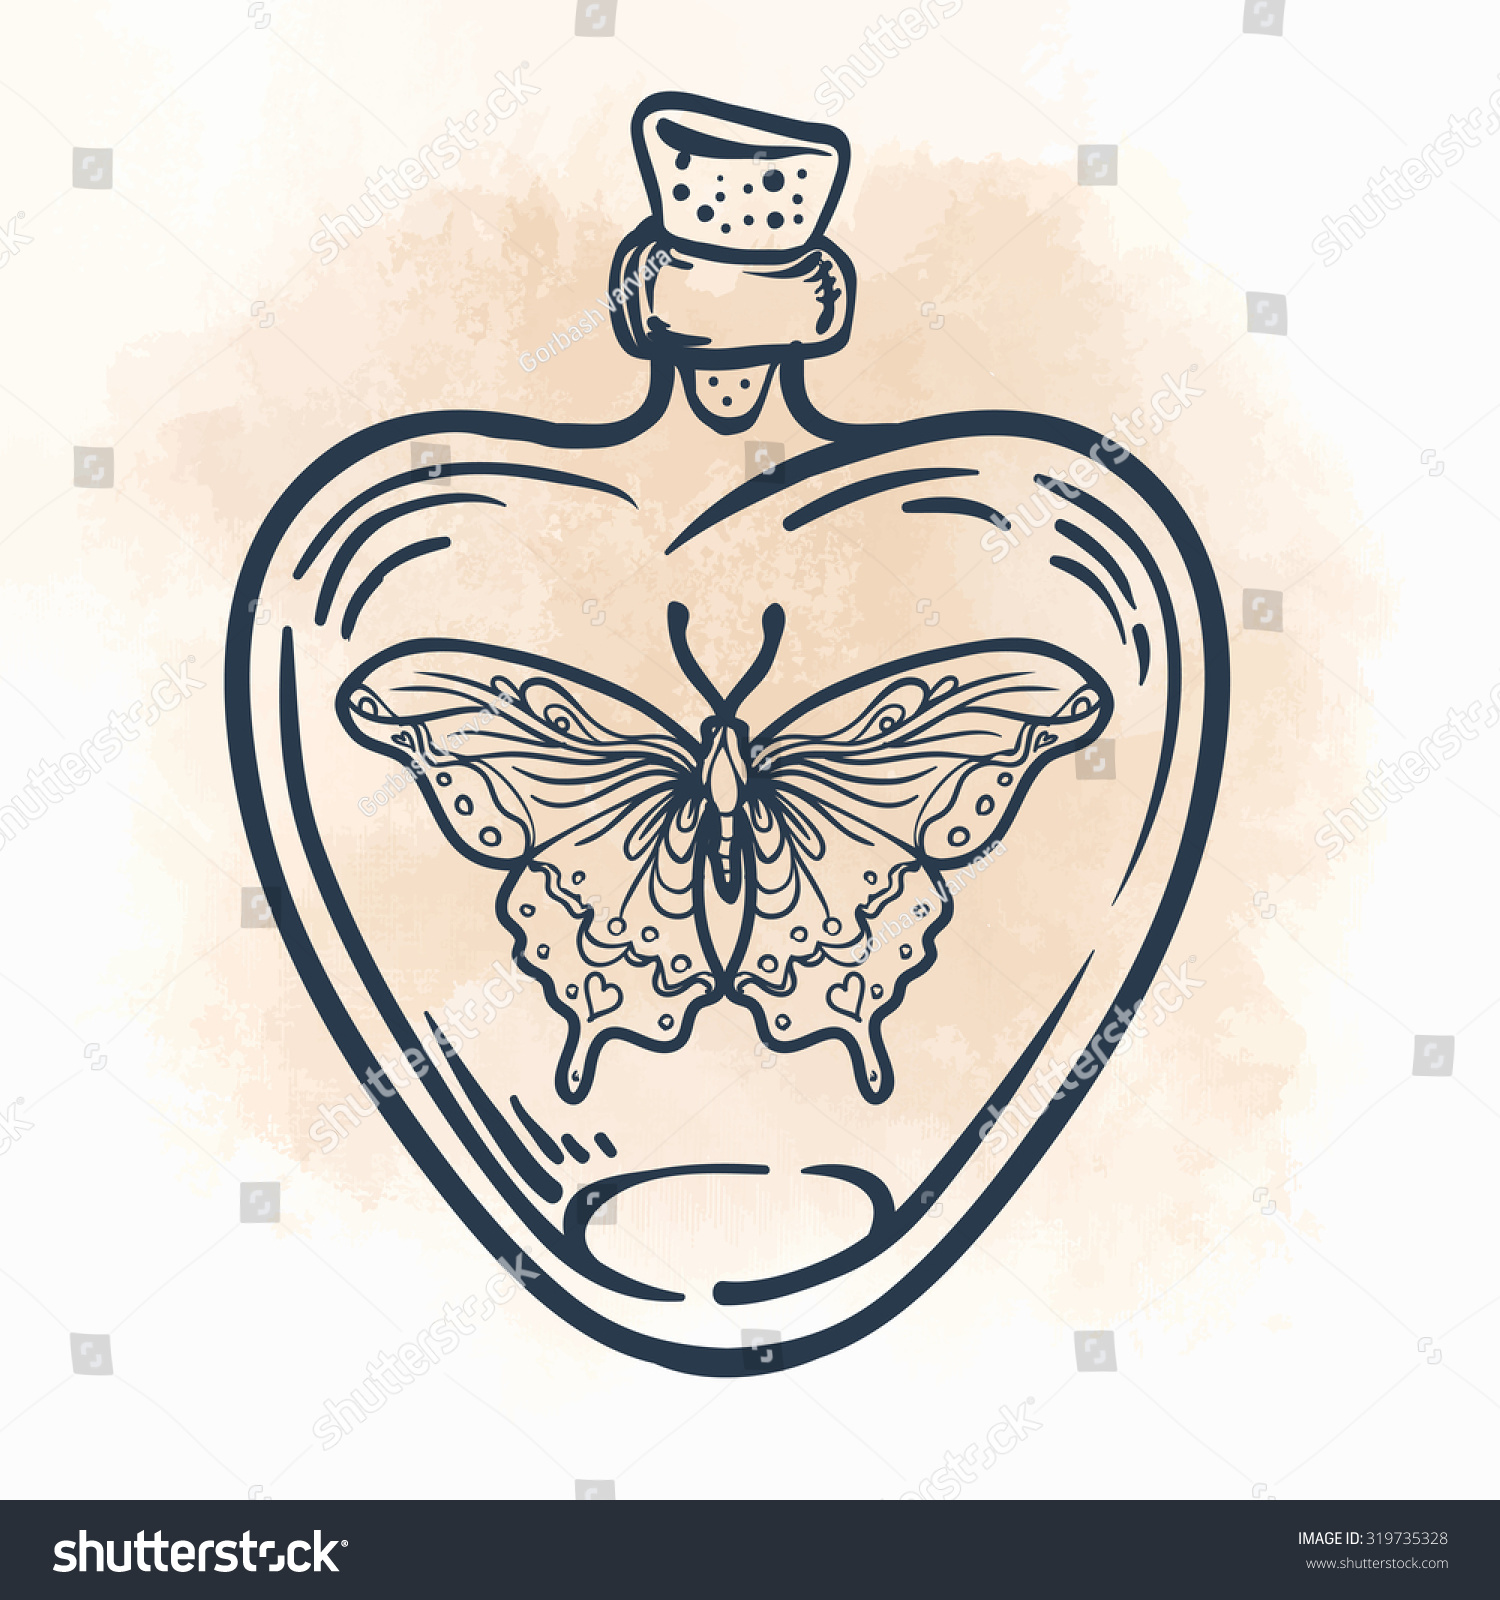 Butterfly Heartshaped Bottle Hand Drawn Engraving Stock Vector